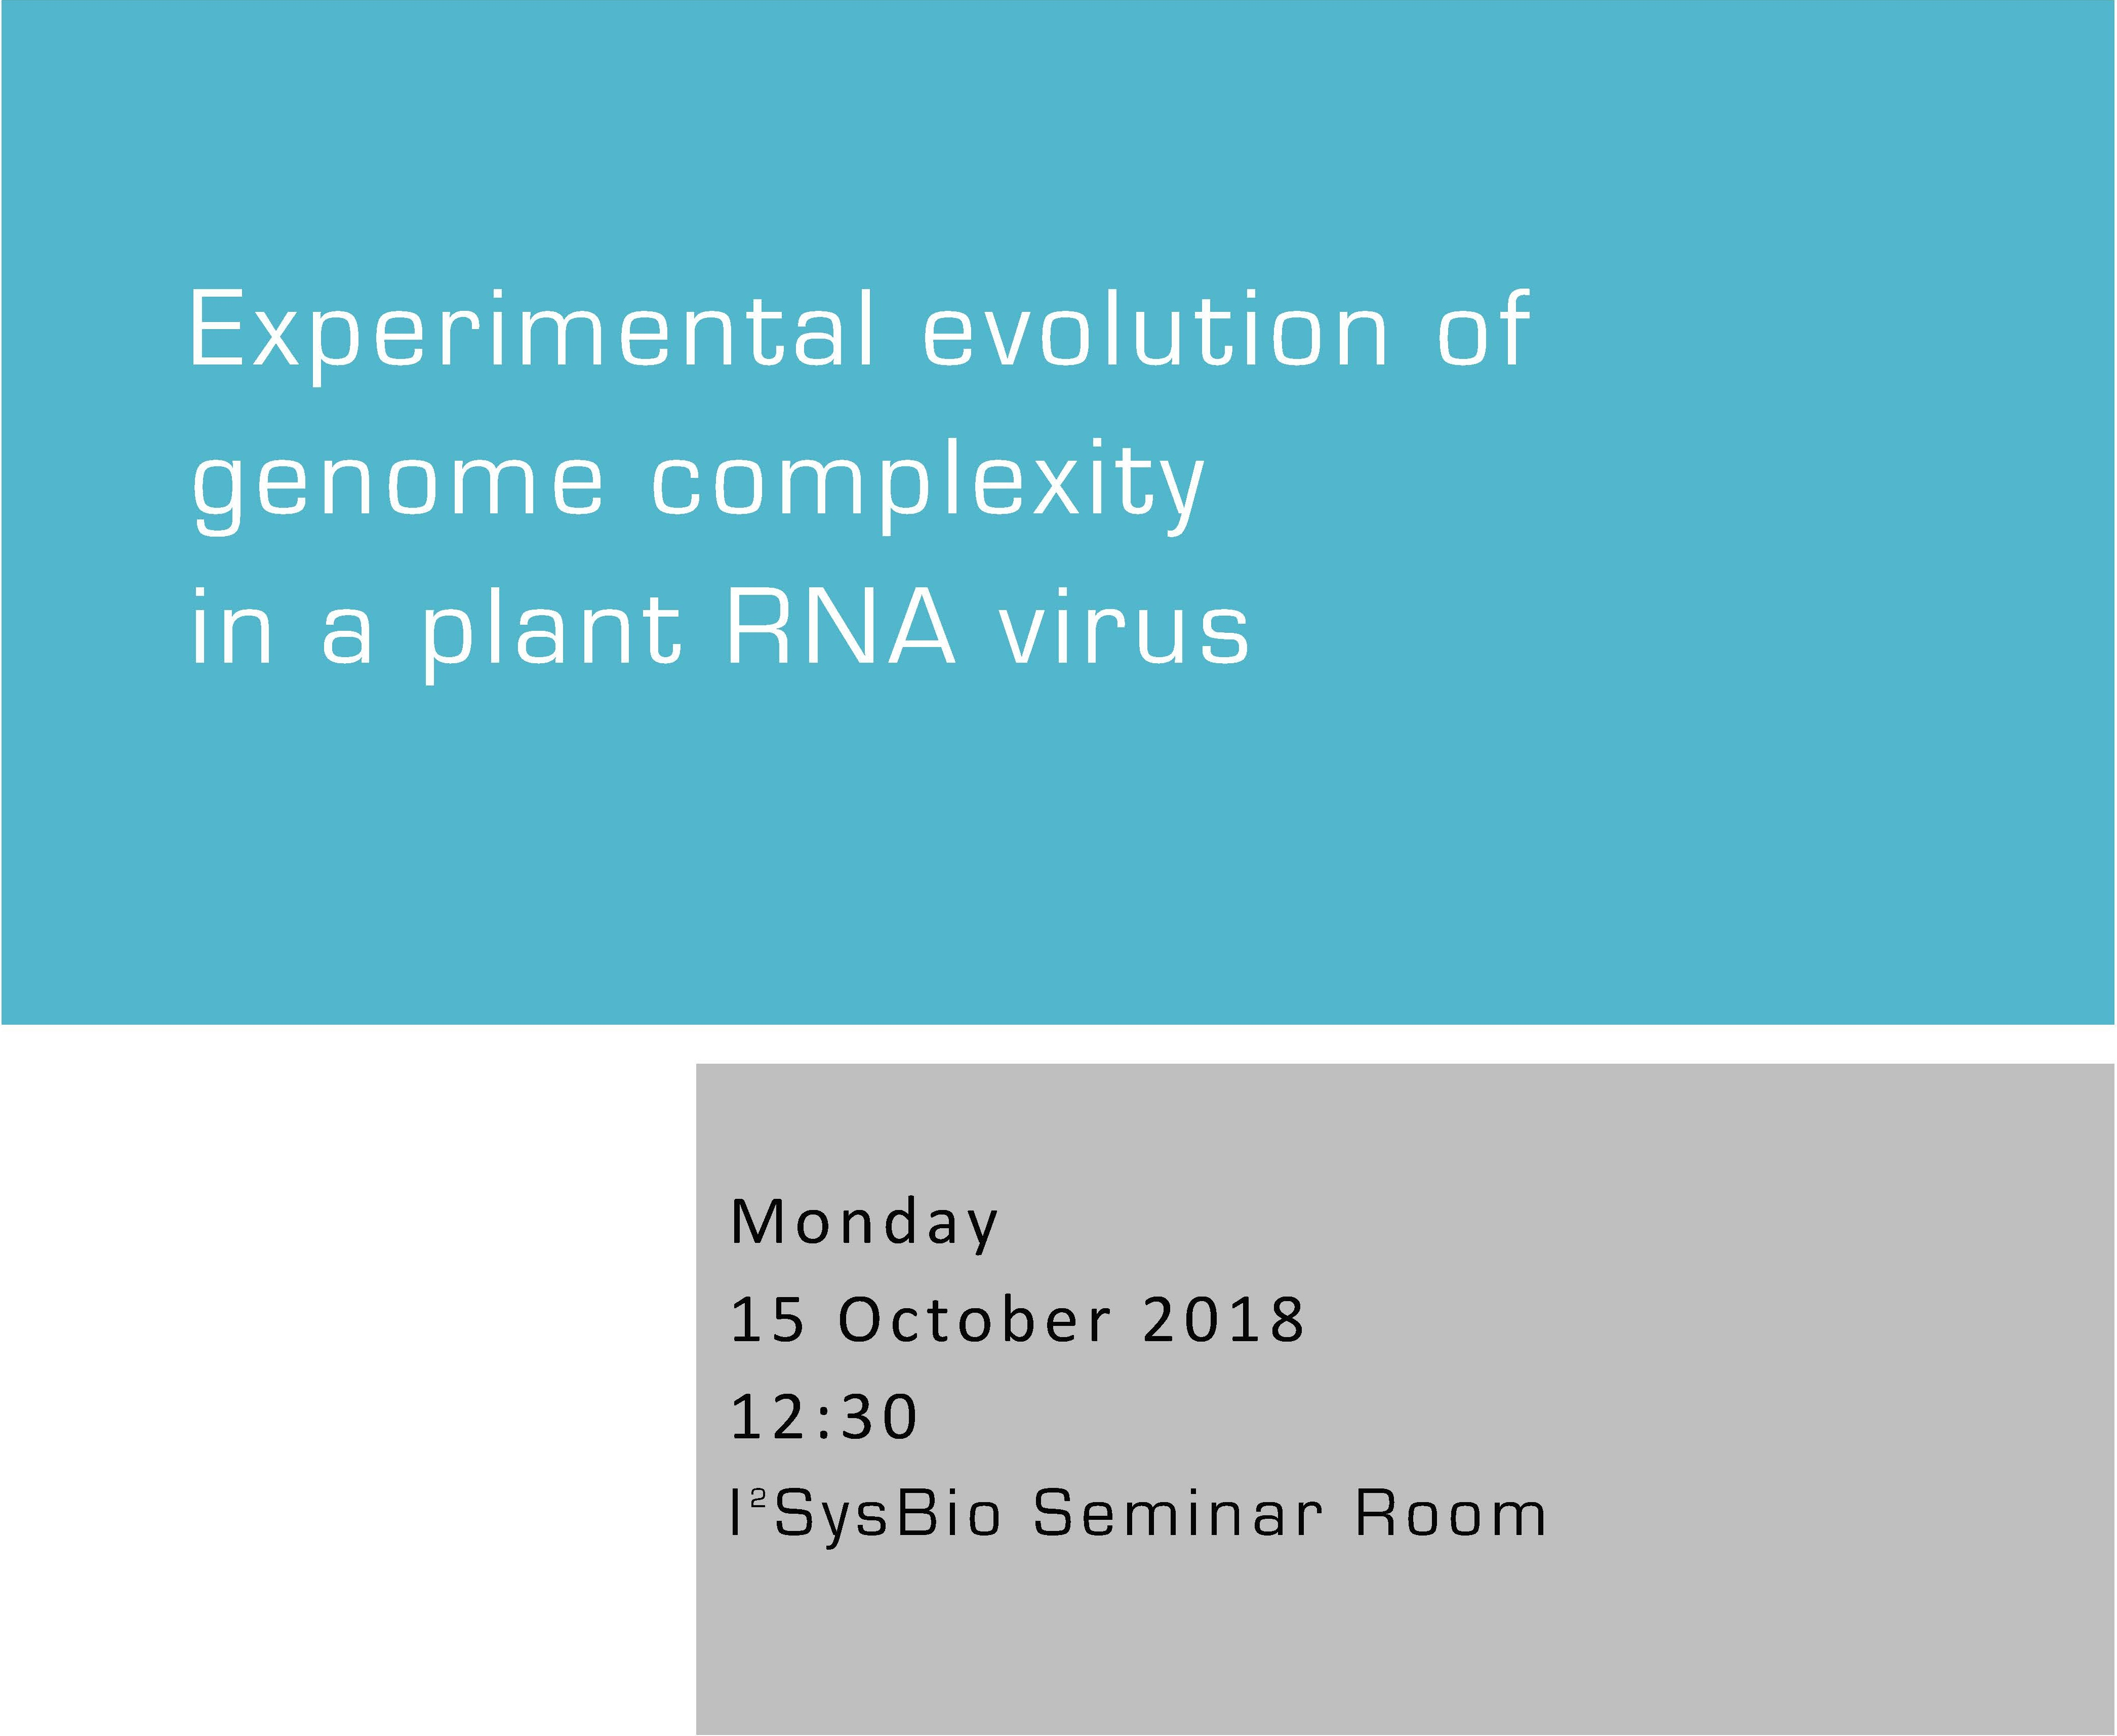 Experimental evolution of genome complexity in a plant RNA virus